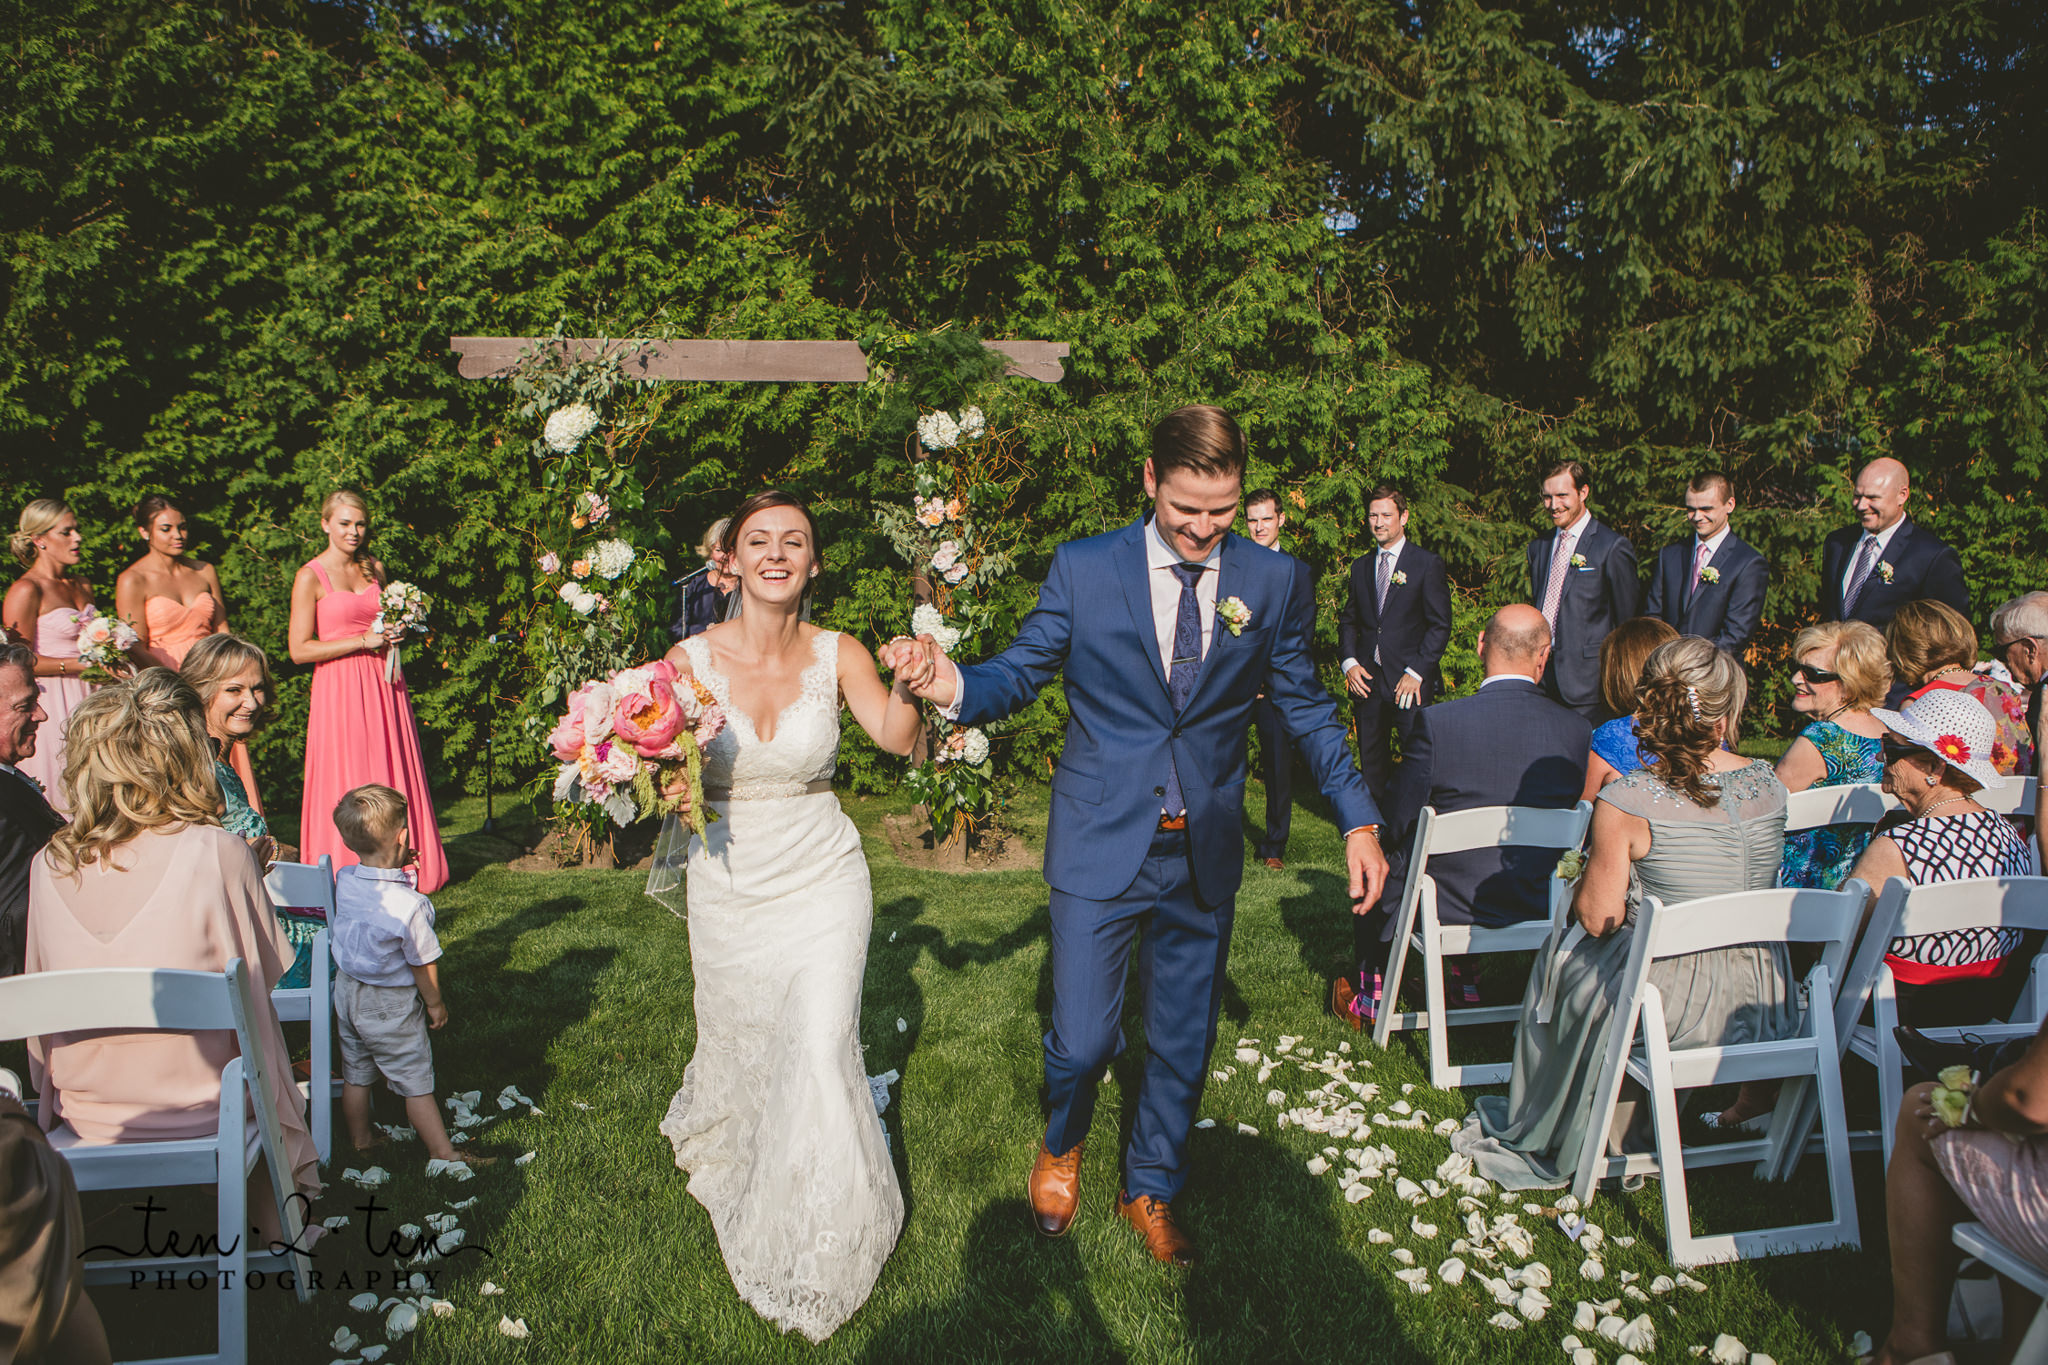 5 Things to Consider before planning an Outdoor Ceremony